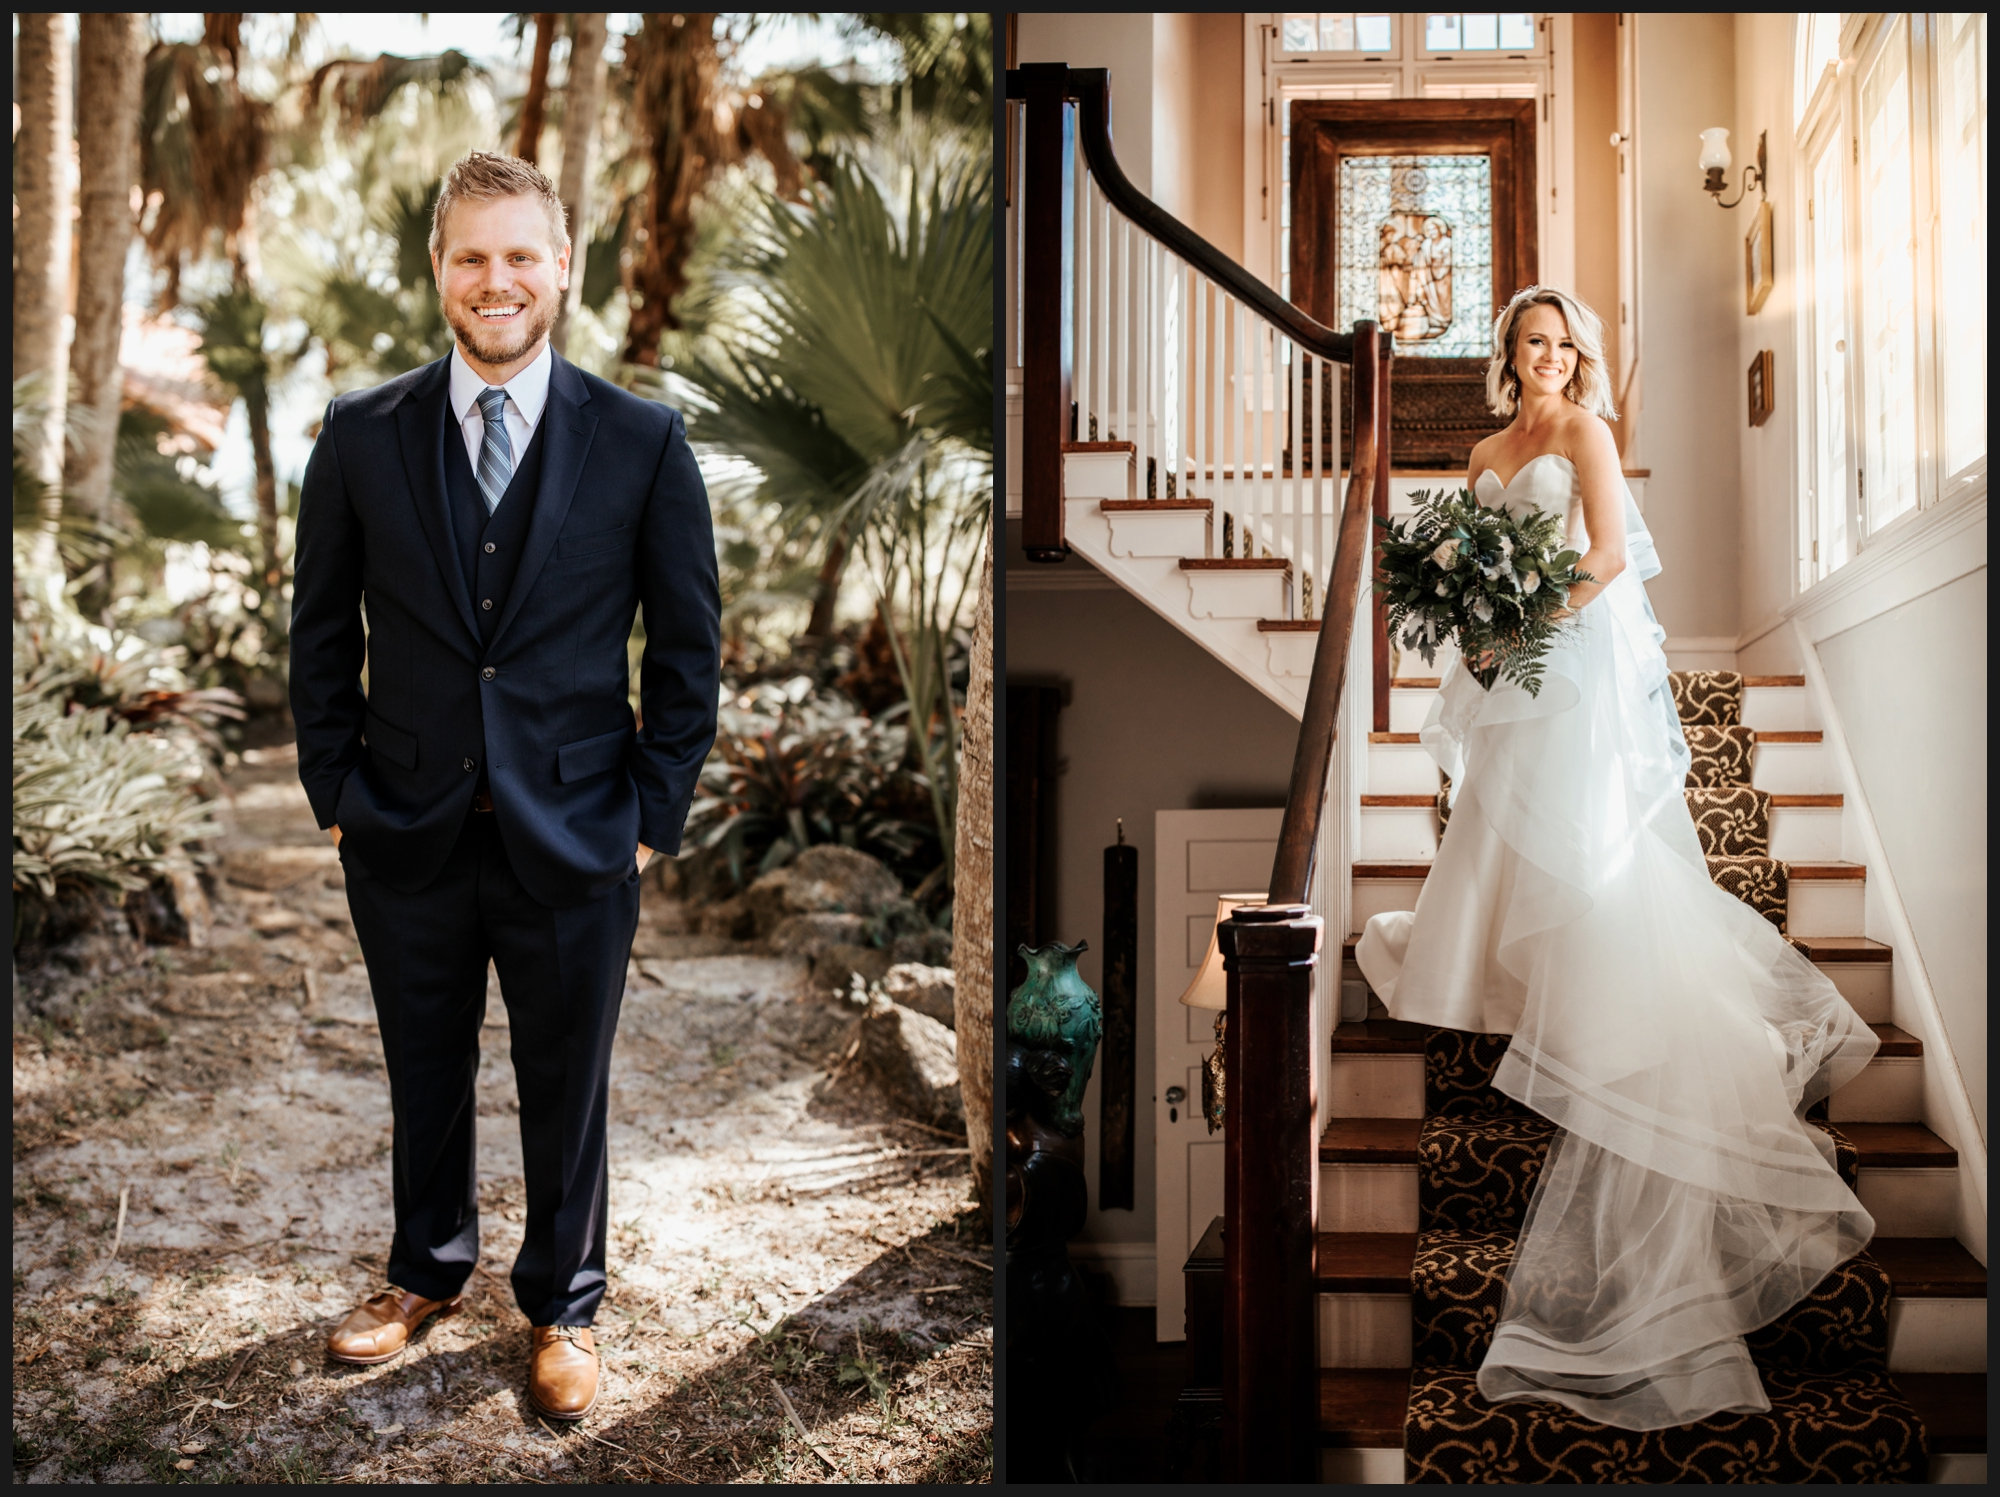 Orlando-Wedding-Photographer-destination-wedding-photographer-florida-wedding-photographer-bohemian-wedding-photographer_1472.jpg